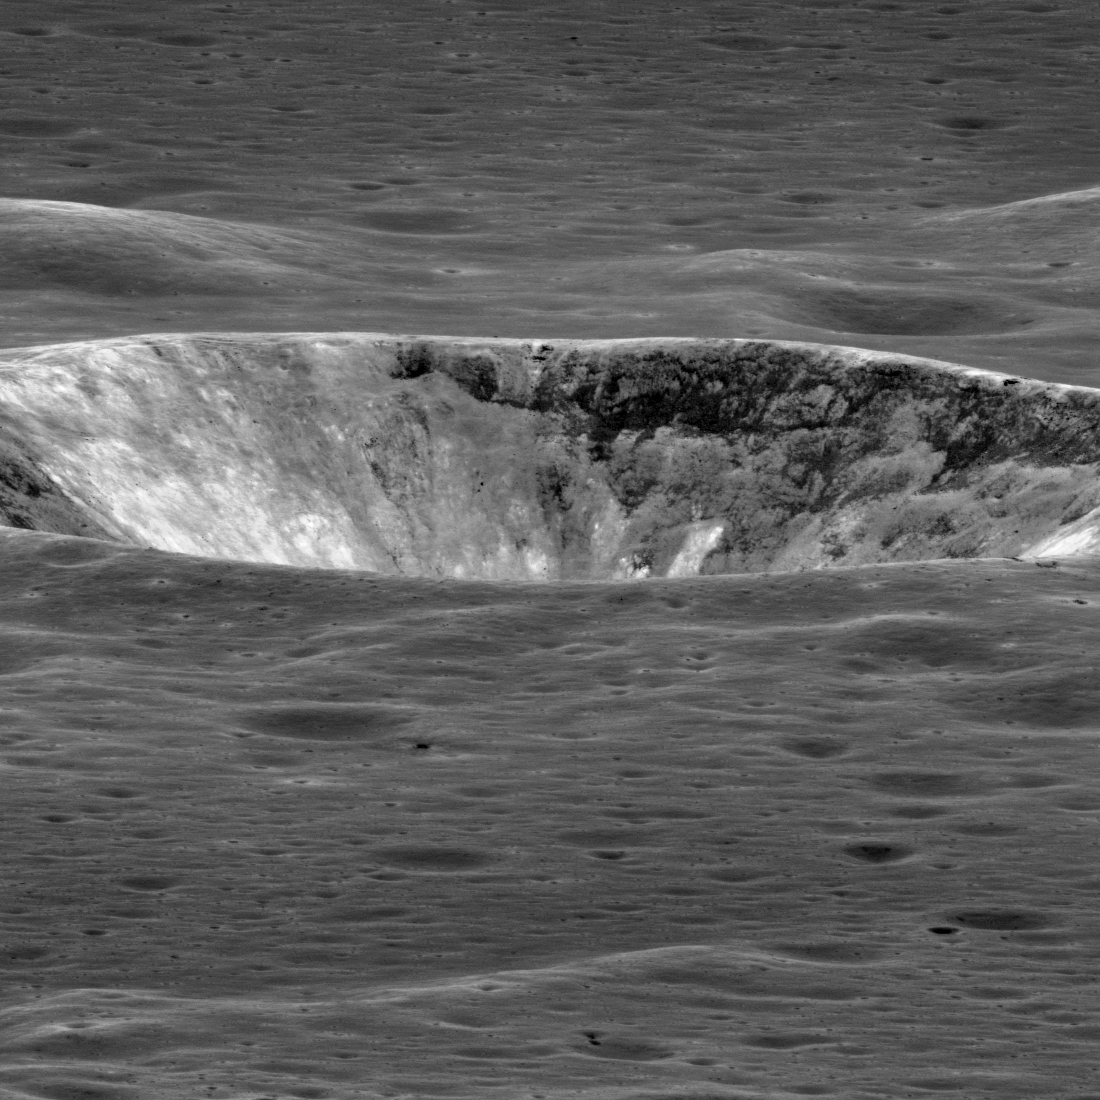 crater seen almost edge-on